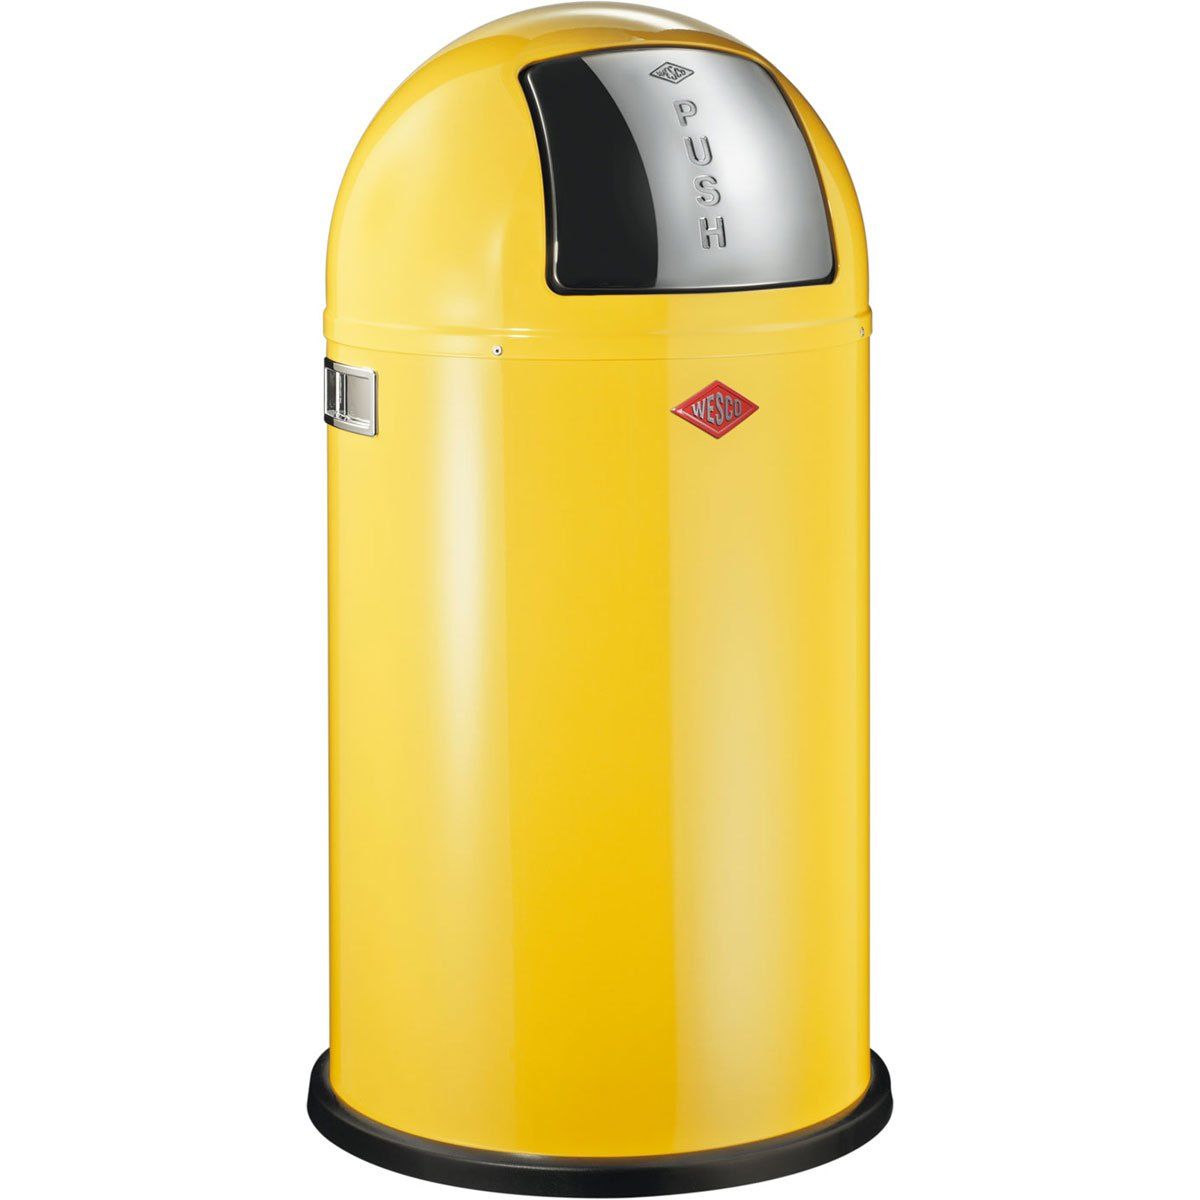 Attractive Wesco 175 831 19 Pushboy Abfallsammler, Lemon Yellow: Amazon.de: Küche U0026  Haushalt Great Pictures